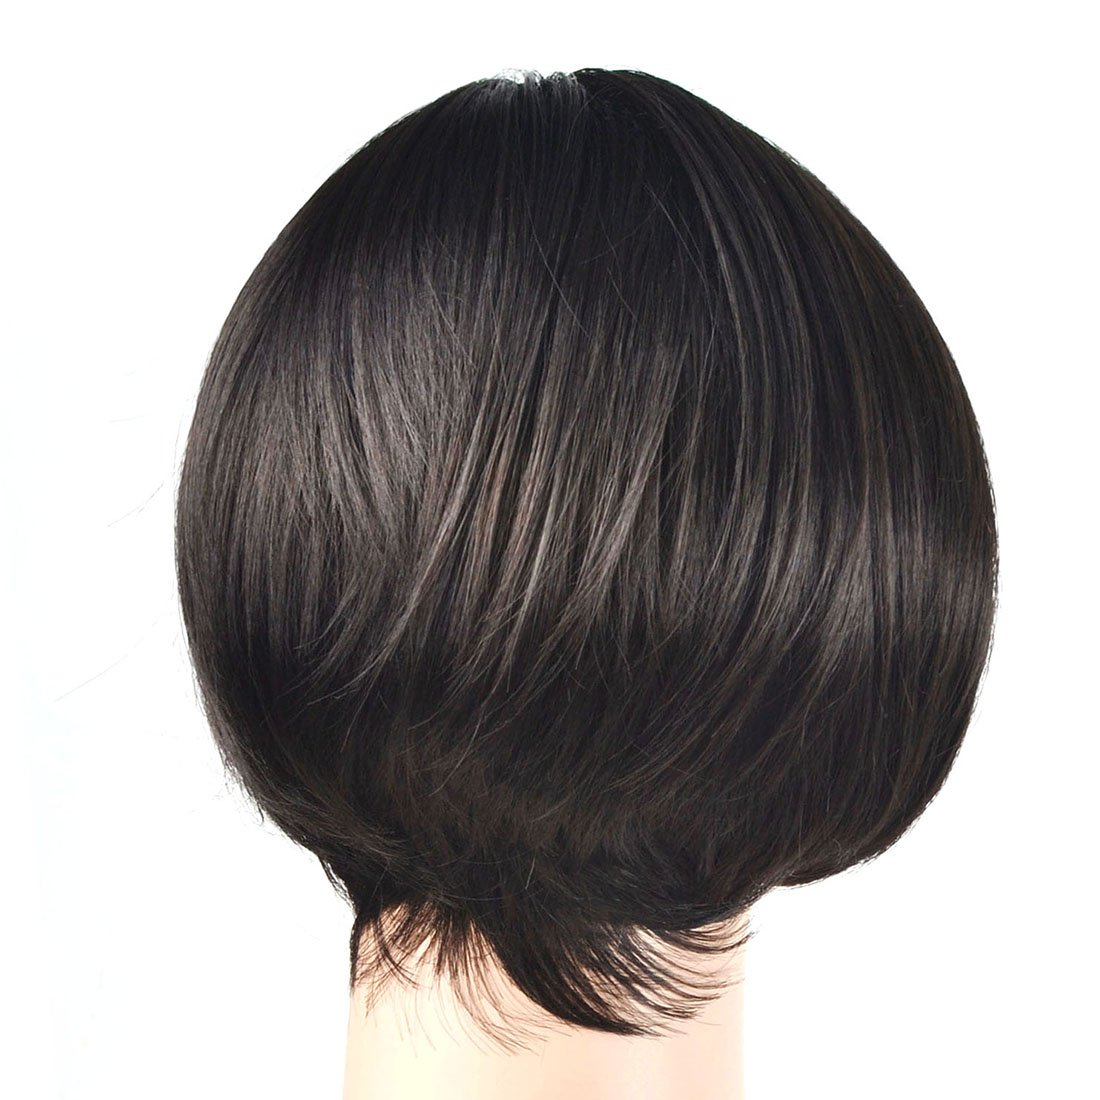 Coolsky Wig OL Short Black Woman Hair For Party or Daily Life Cosplay by COOLSKY (Image #5)